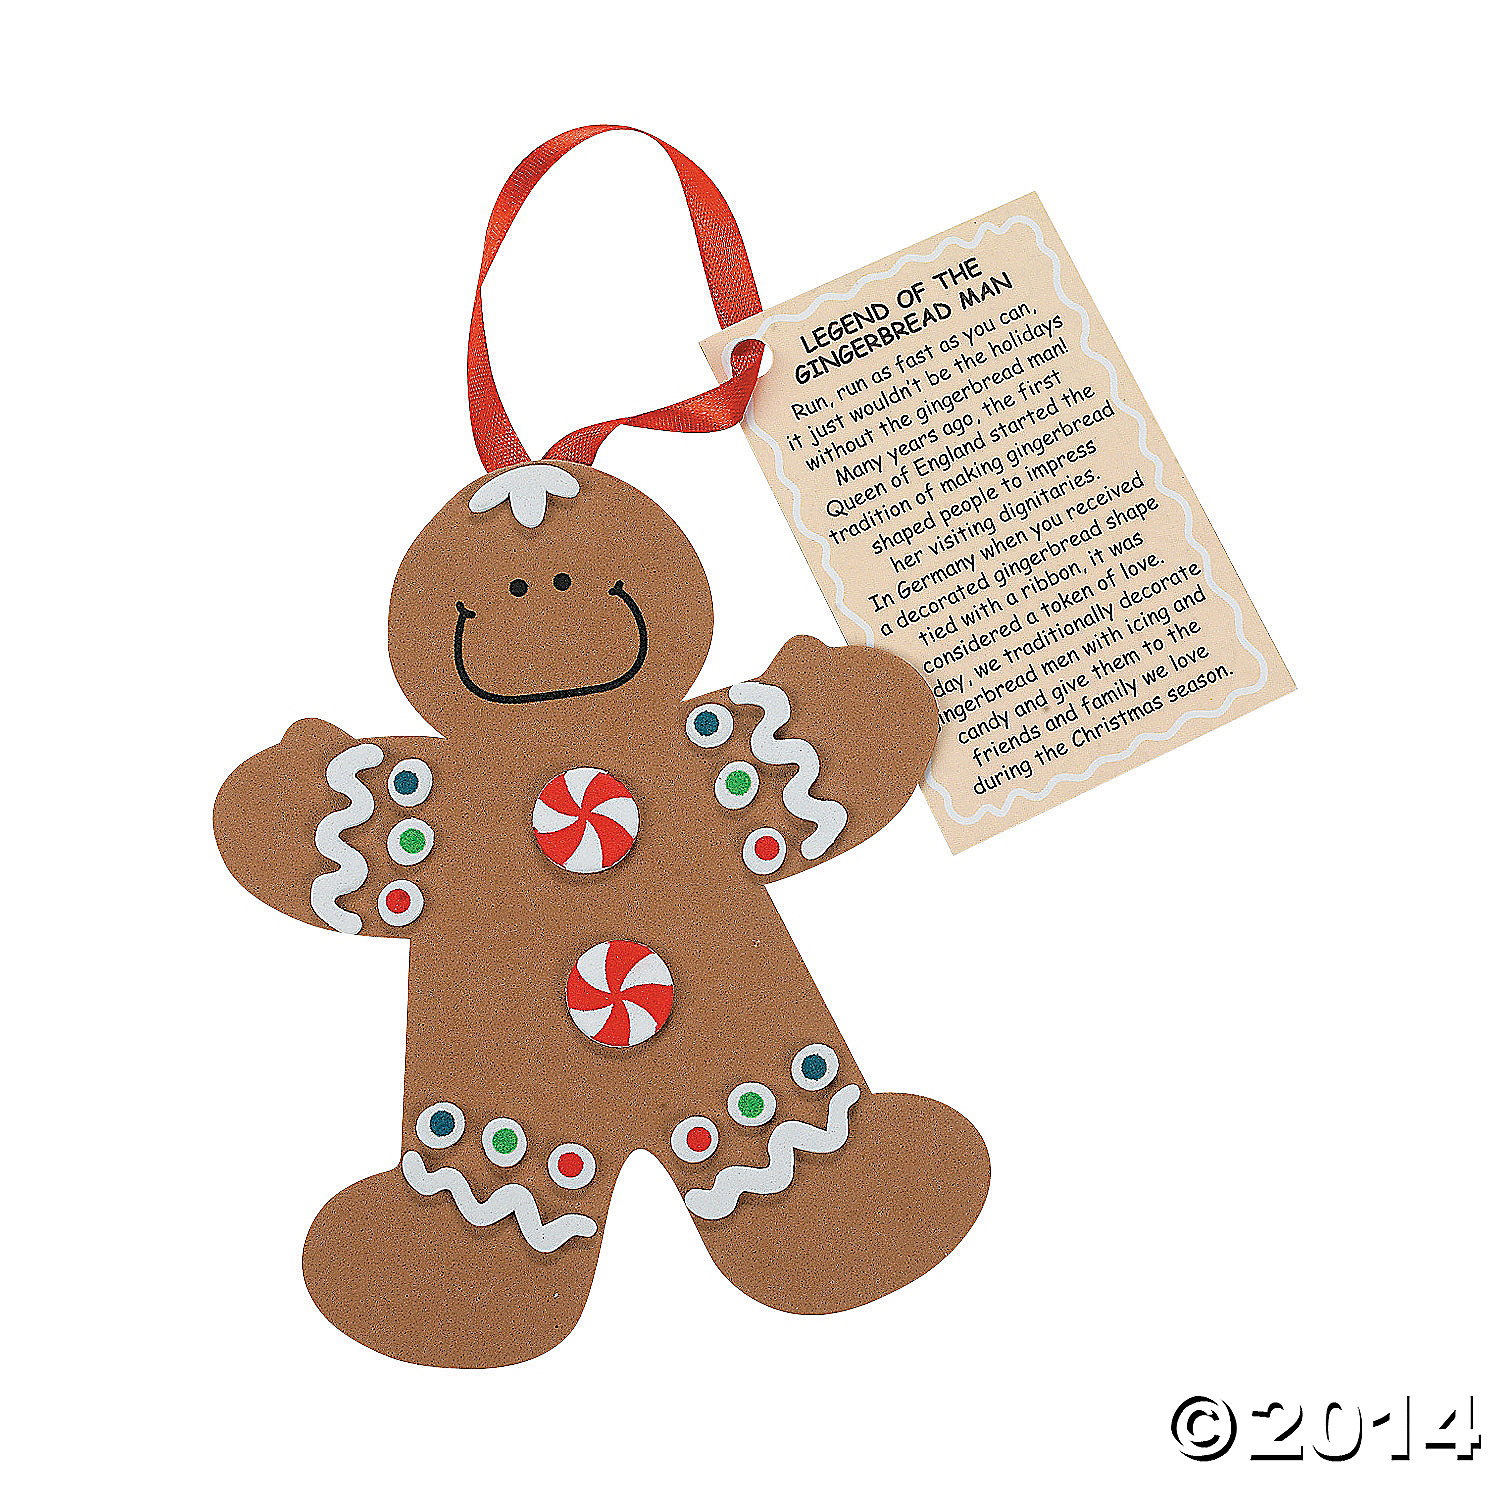 Gingerbread man ornament craft - Legend Of The Gingerbread Man Ornament Craft Kit 12pk Party Supplies Canada Open A Party